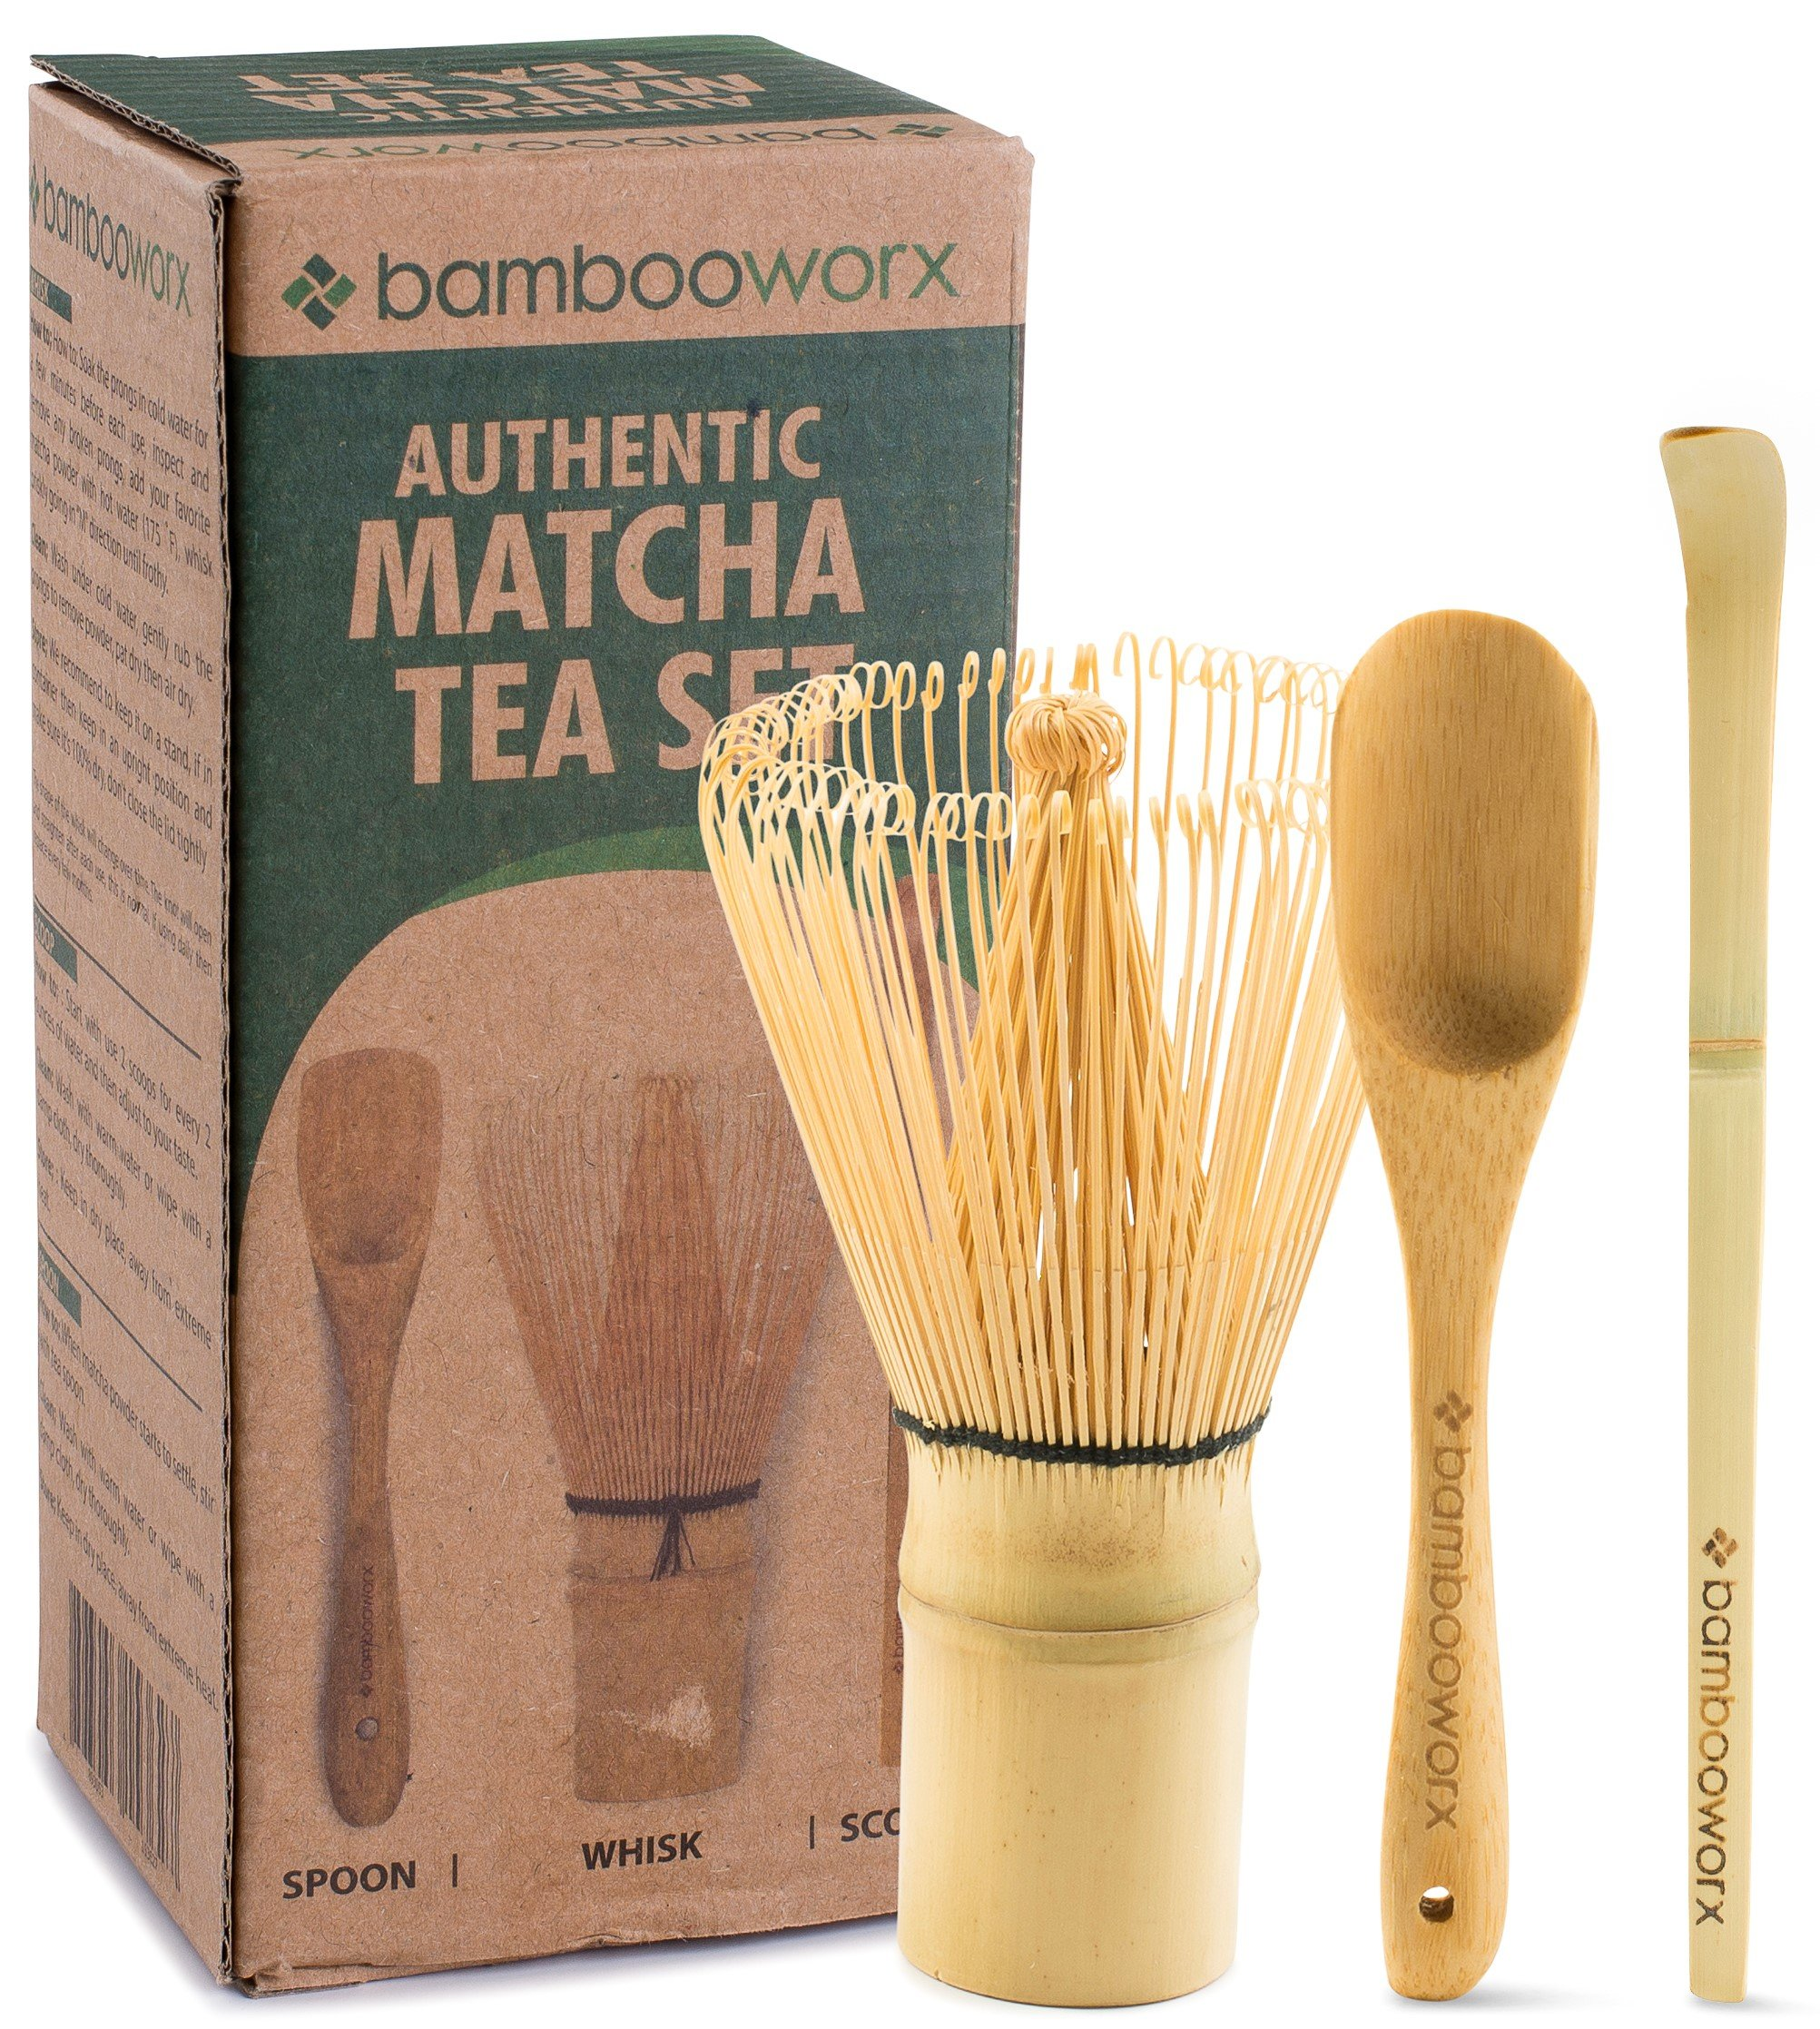 BambooWorx Japanese Tea Set, Matcha Whisk (Chasen), Traditional Scoop (Chashaku), Tea Spoon, The Perfect Set to Prepare a Traditional Cup of Matcha.